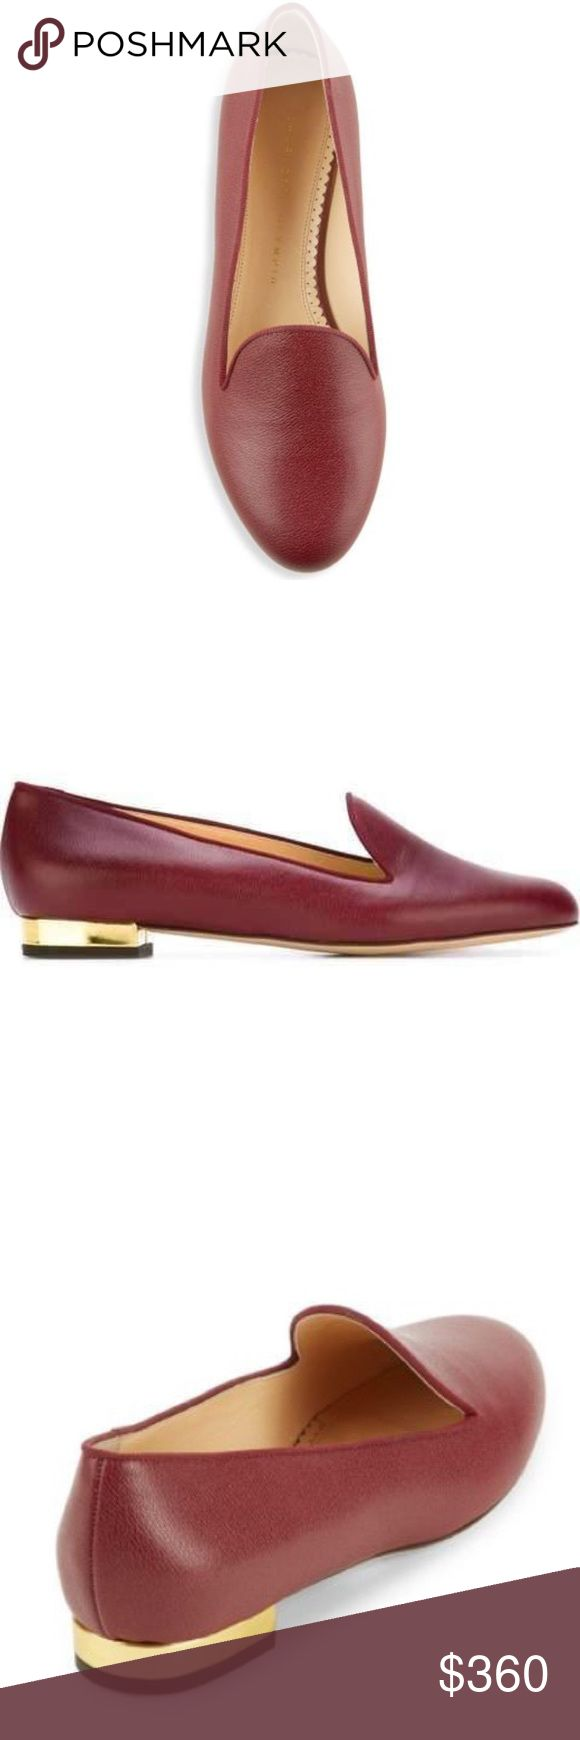 Charlotte Olympia ⭐️NEW⭐️ Burgundy Loafers Shoes come with a set of 52 leather adhesive stickers in an array of playful designs - including the full alphabet.This favorite combination can be stuck to shoes. Made in Italy 🇮🇹  - Gold leather-covered heel measures approximately 10mm/ 0.5 inches - Burgundy leather - Slip on ✔️Brand new with box  ✔️ Pet free, smoke free environment ✔️ Listed product is original  ✔️ Size 7M, Color : Burgundy Charlotte Olympia Shoes